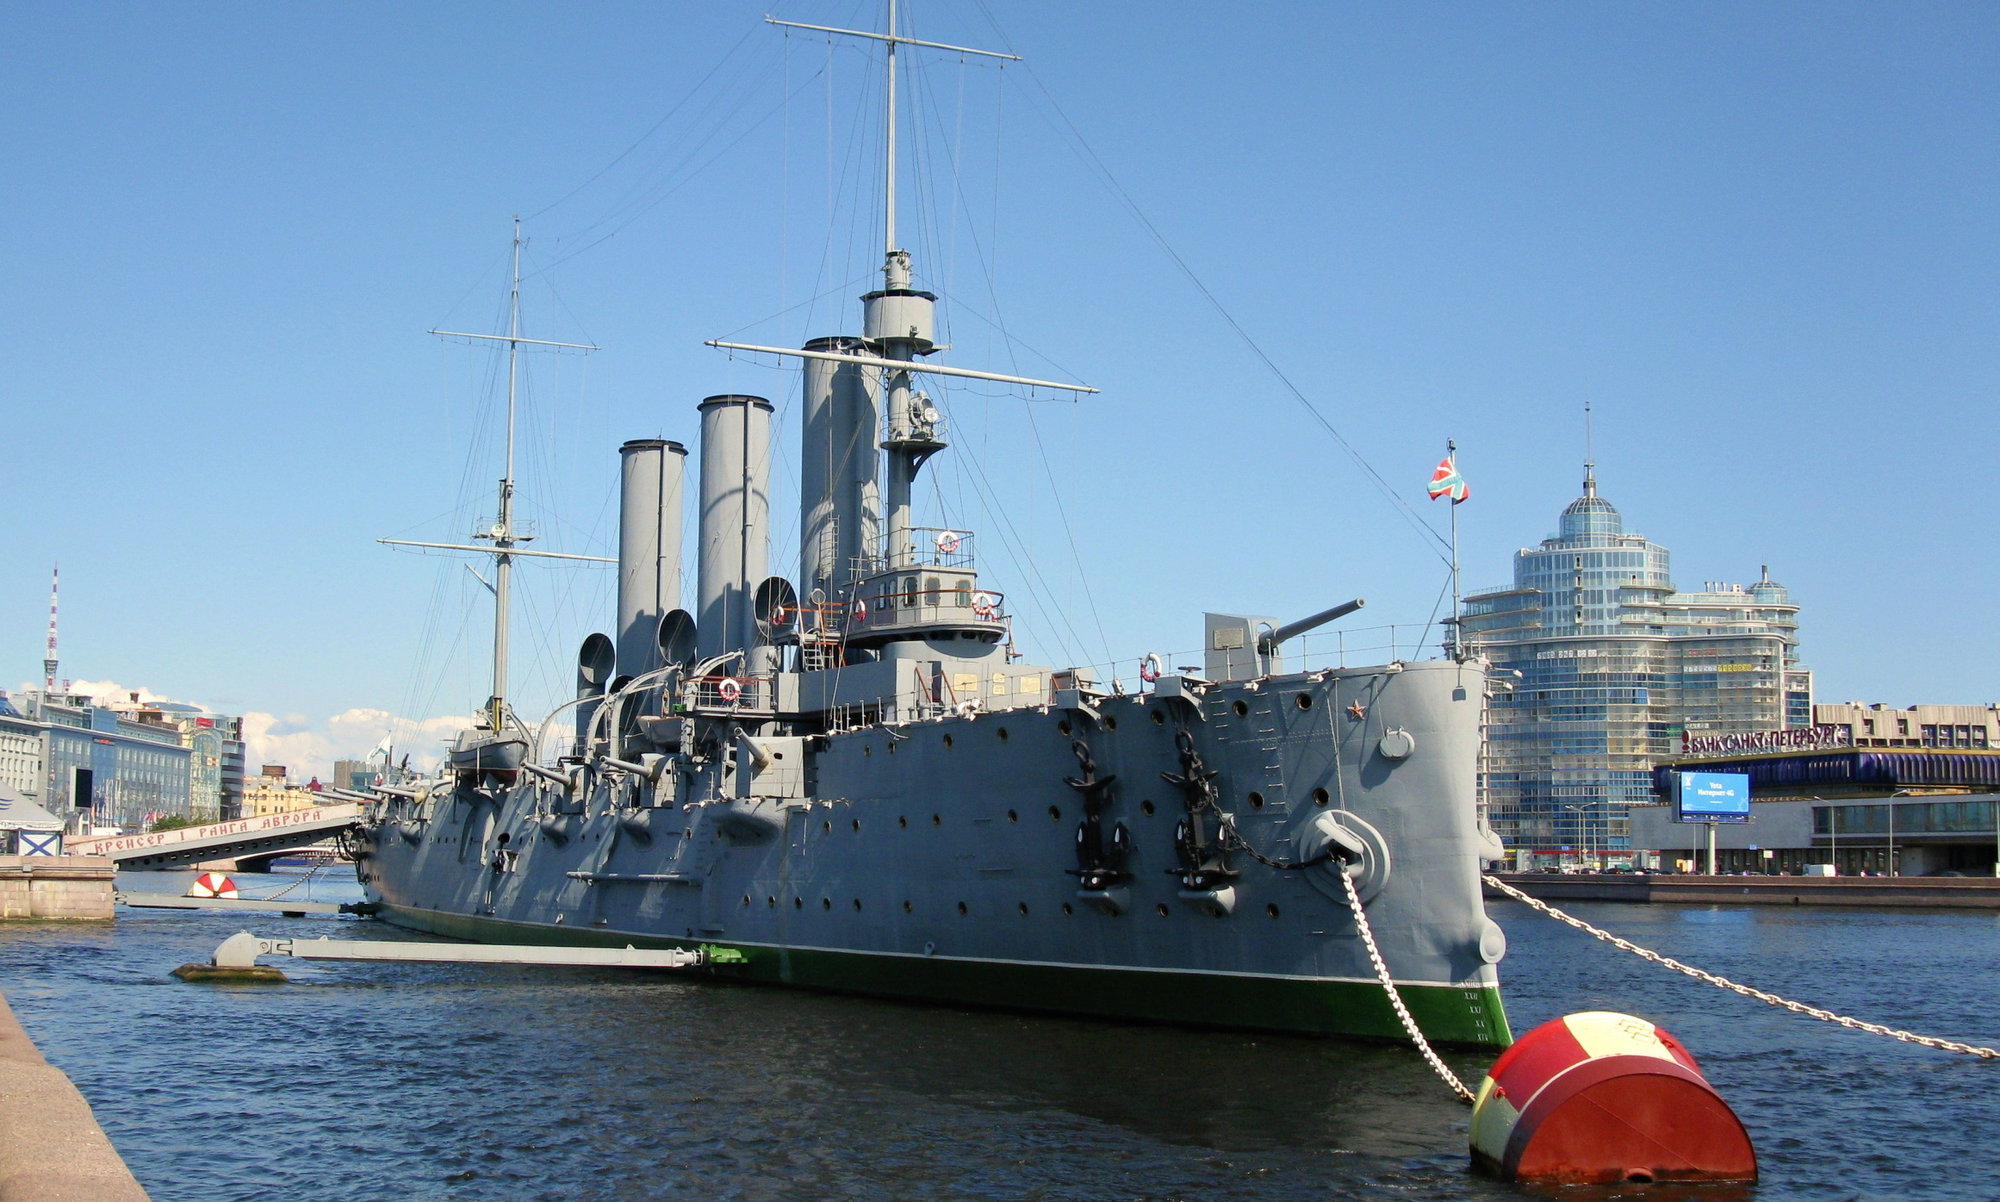 Aurora cruiser – the symbol of St Petersburg